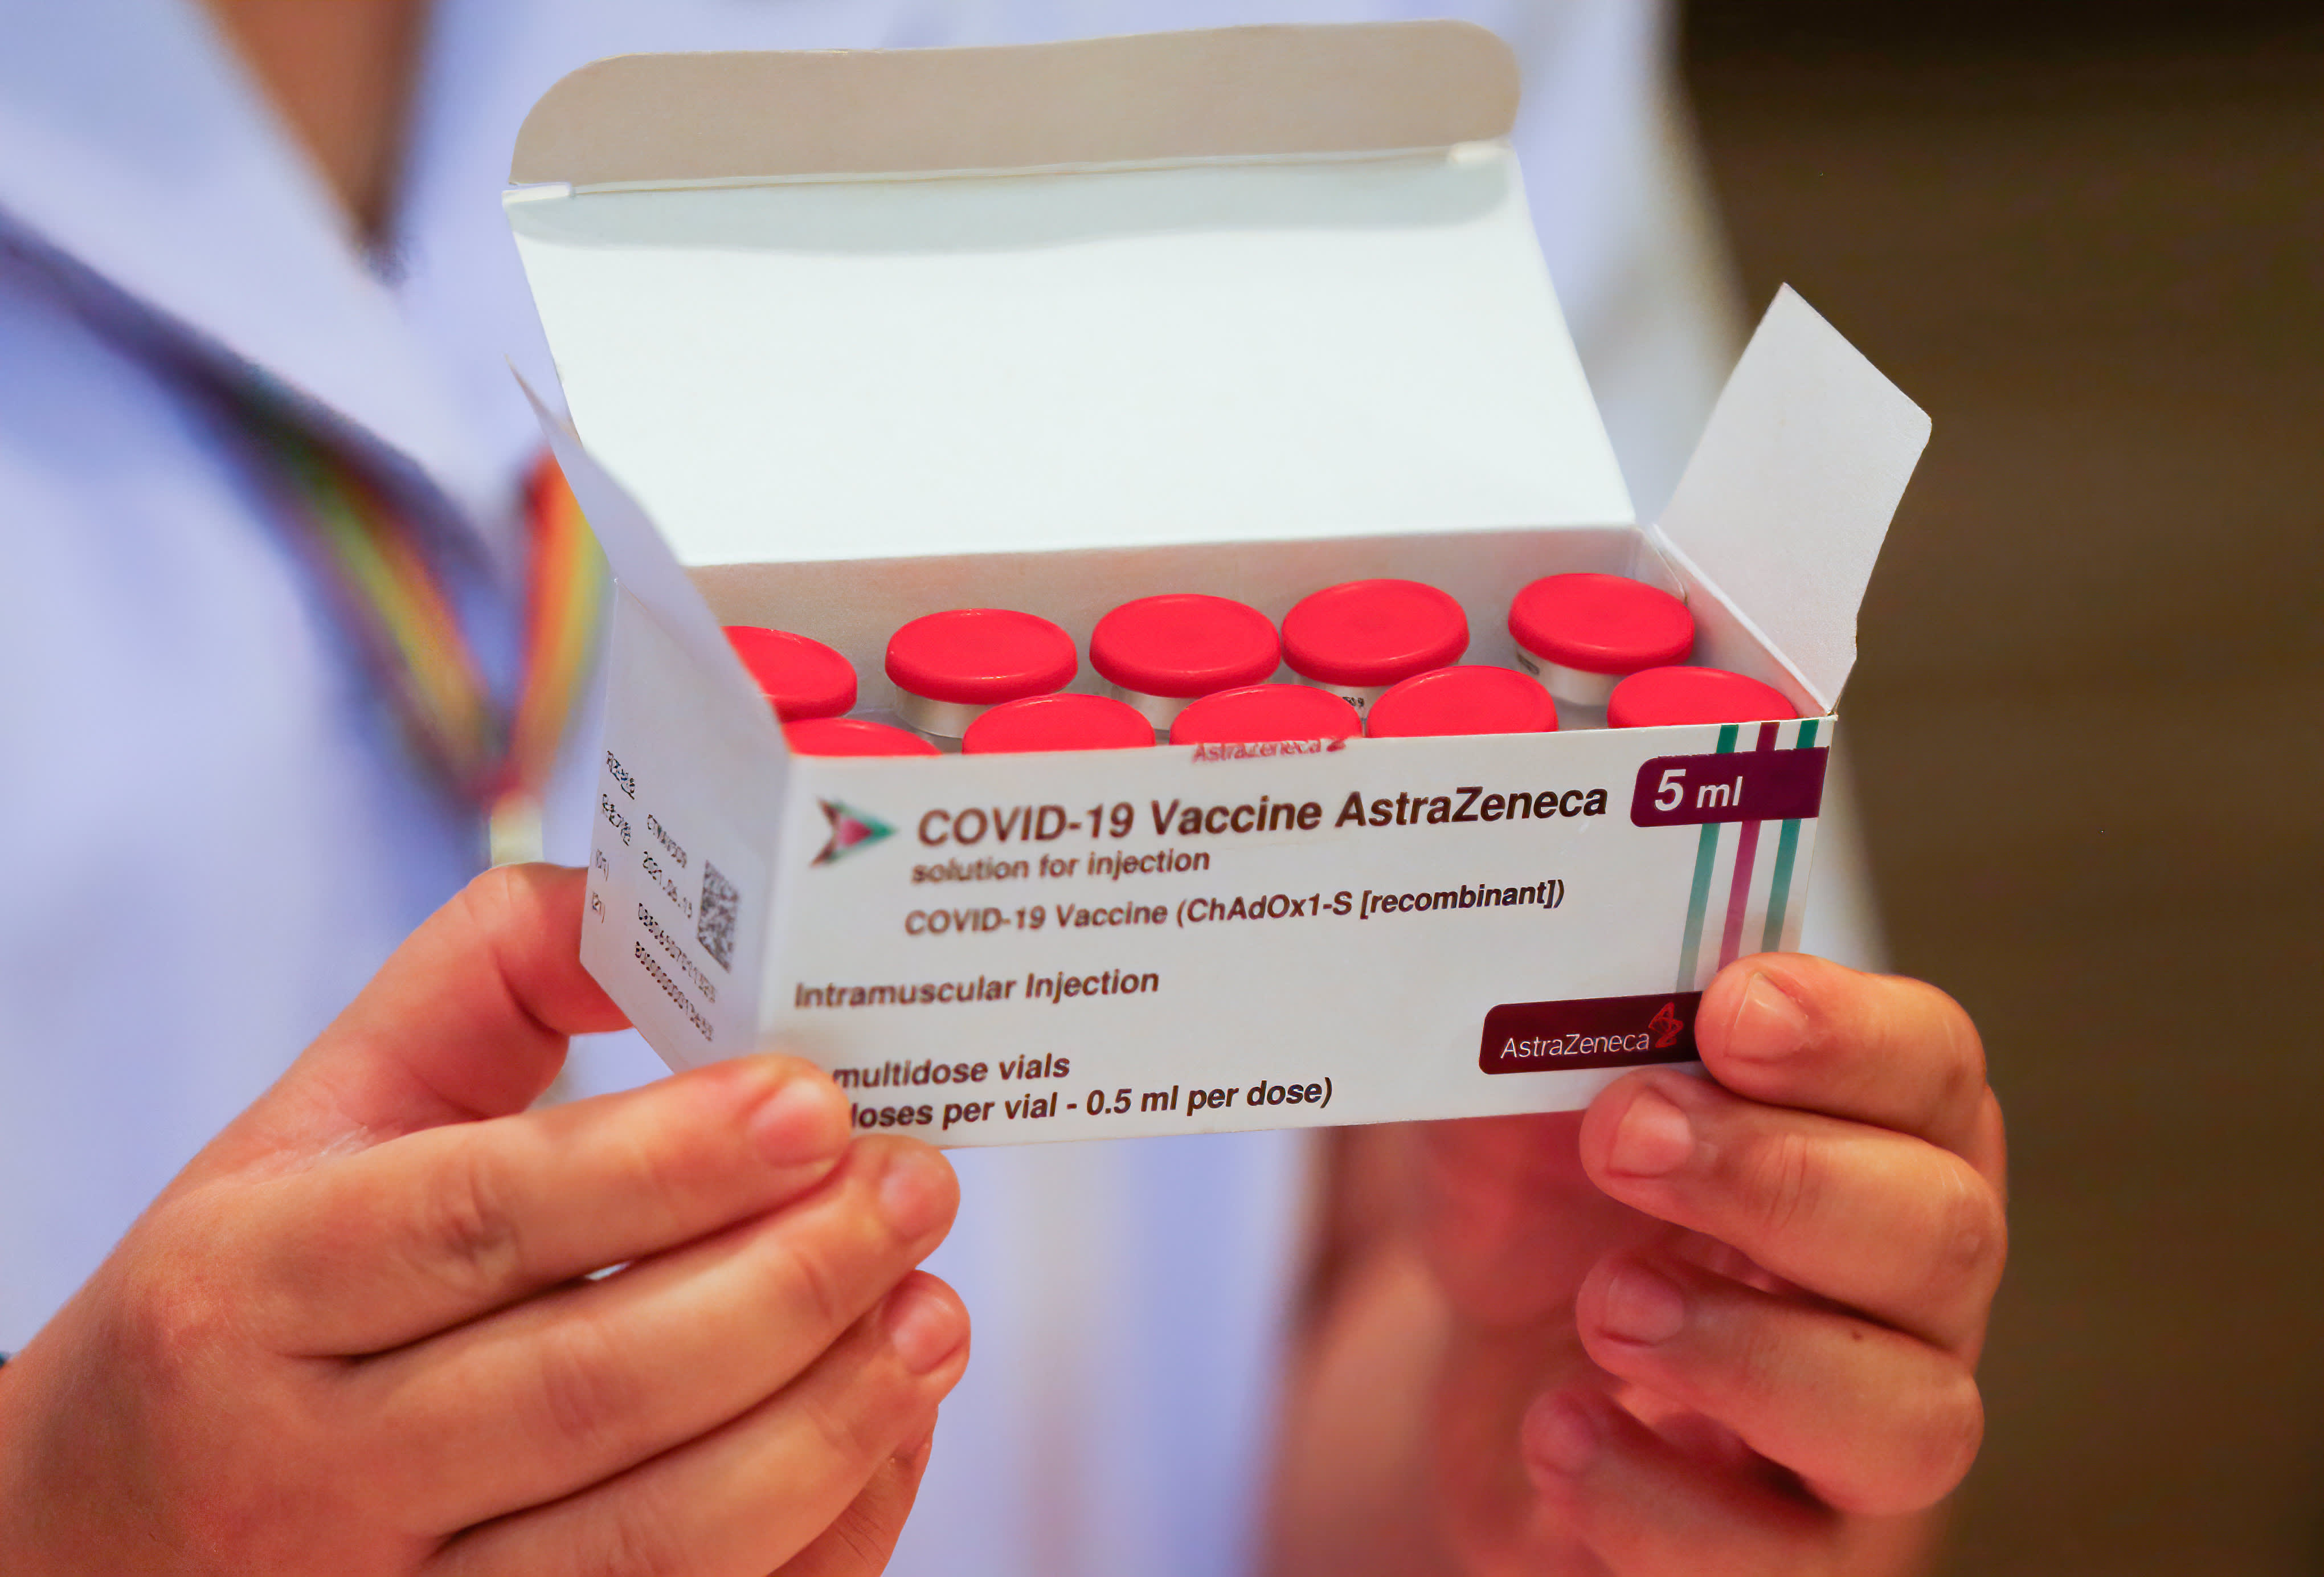 Germany, France, Spain and Italy become latest countries to suspend AstraZeneca vaccine over blood clot fears